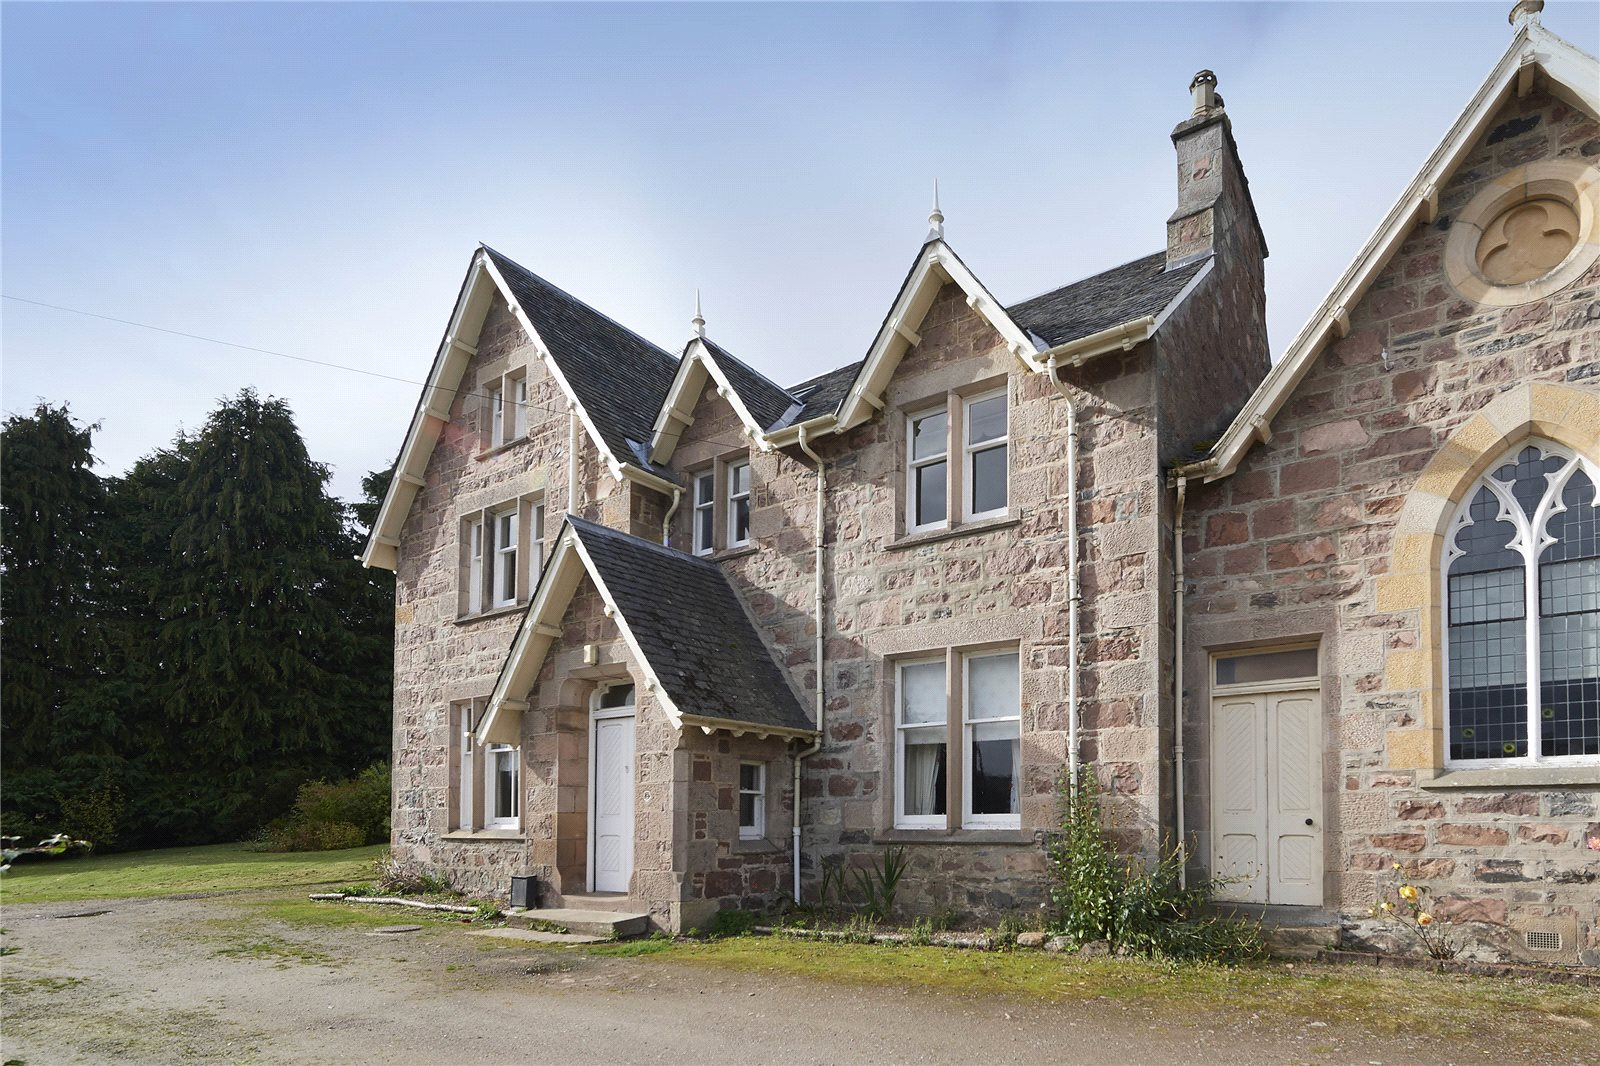 6 Bedrooms Semi Detached House for sale in The Manse, Lochend, Inverness, IV3